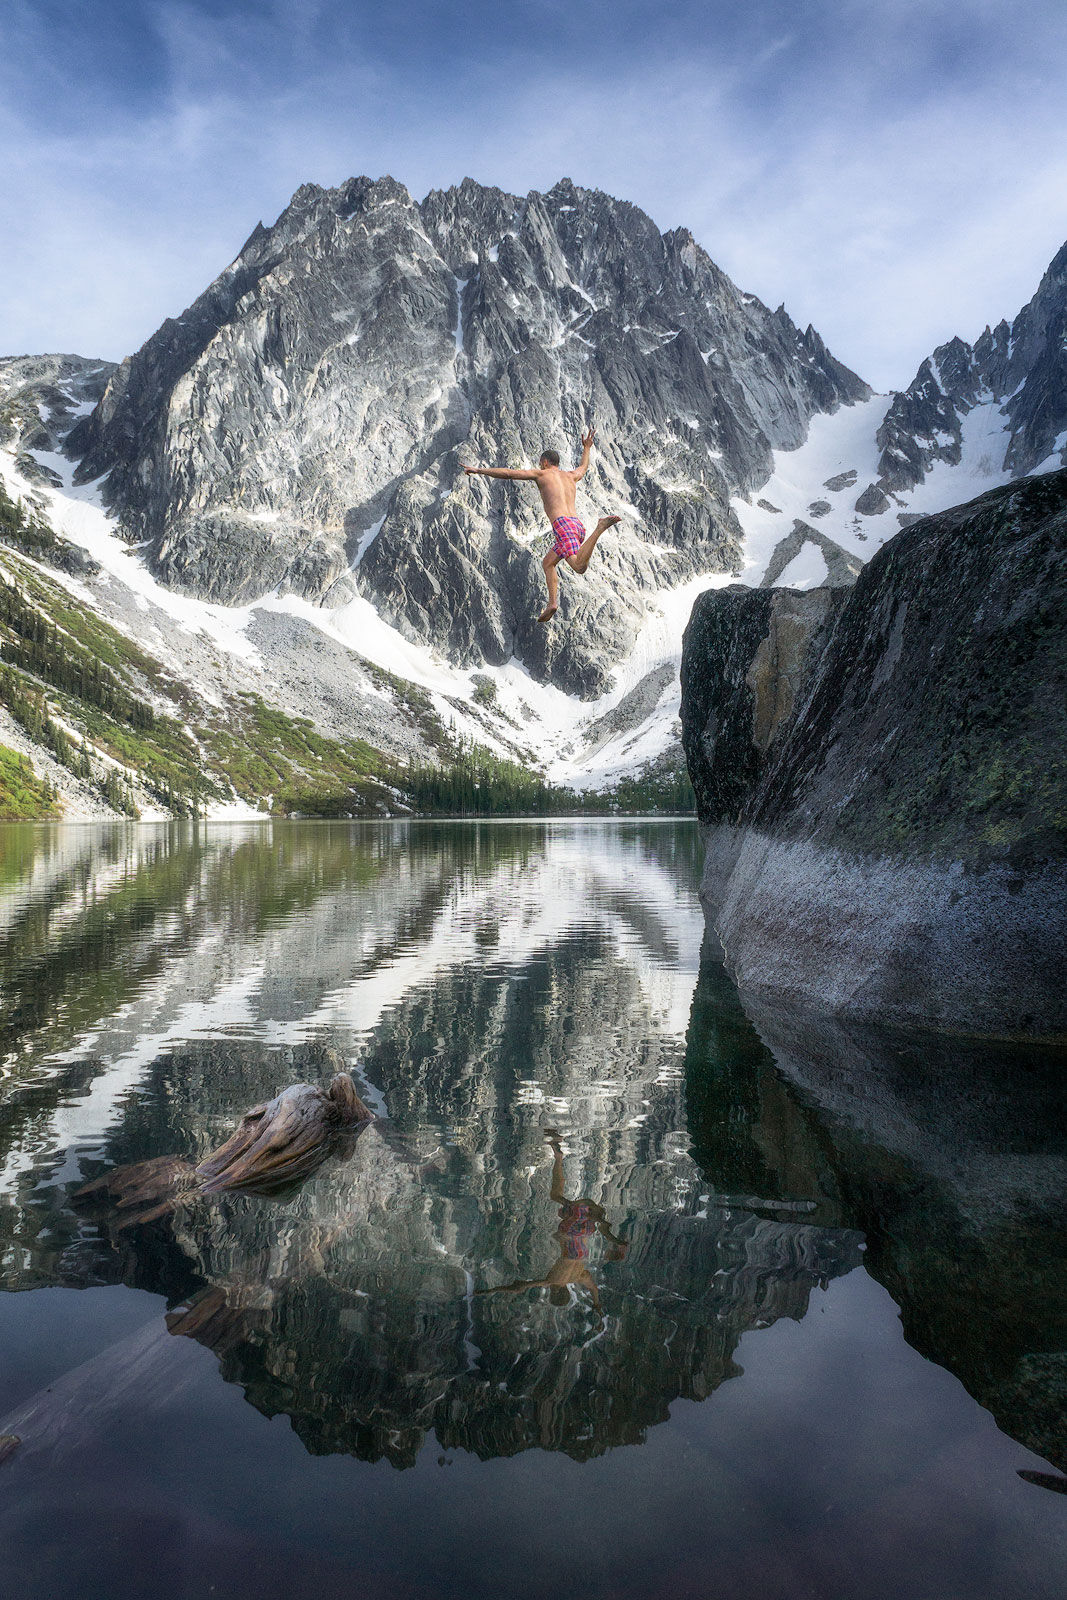 Max taking the plunge in The Alpine Lakes Wilderness